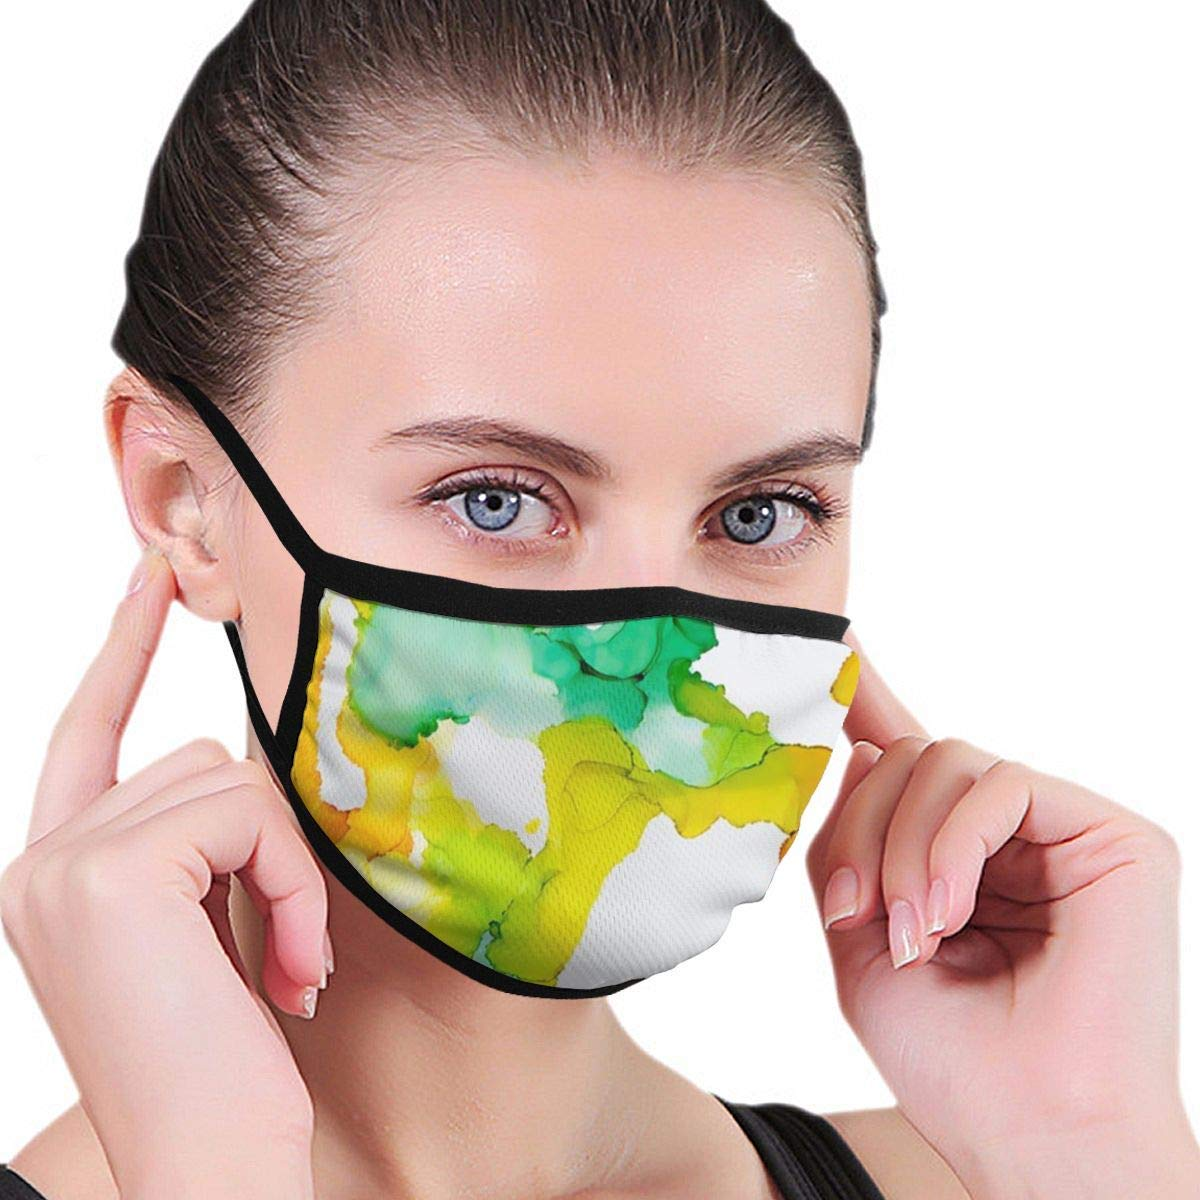 Bdwuhs Mascarillas Bucales Face Mouth Mask, Prints Mouth Mask Breathable Reusable Printed Face Mask for Men and Women Black